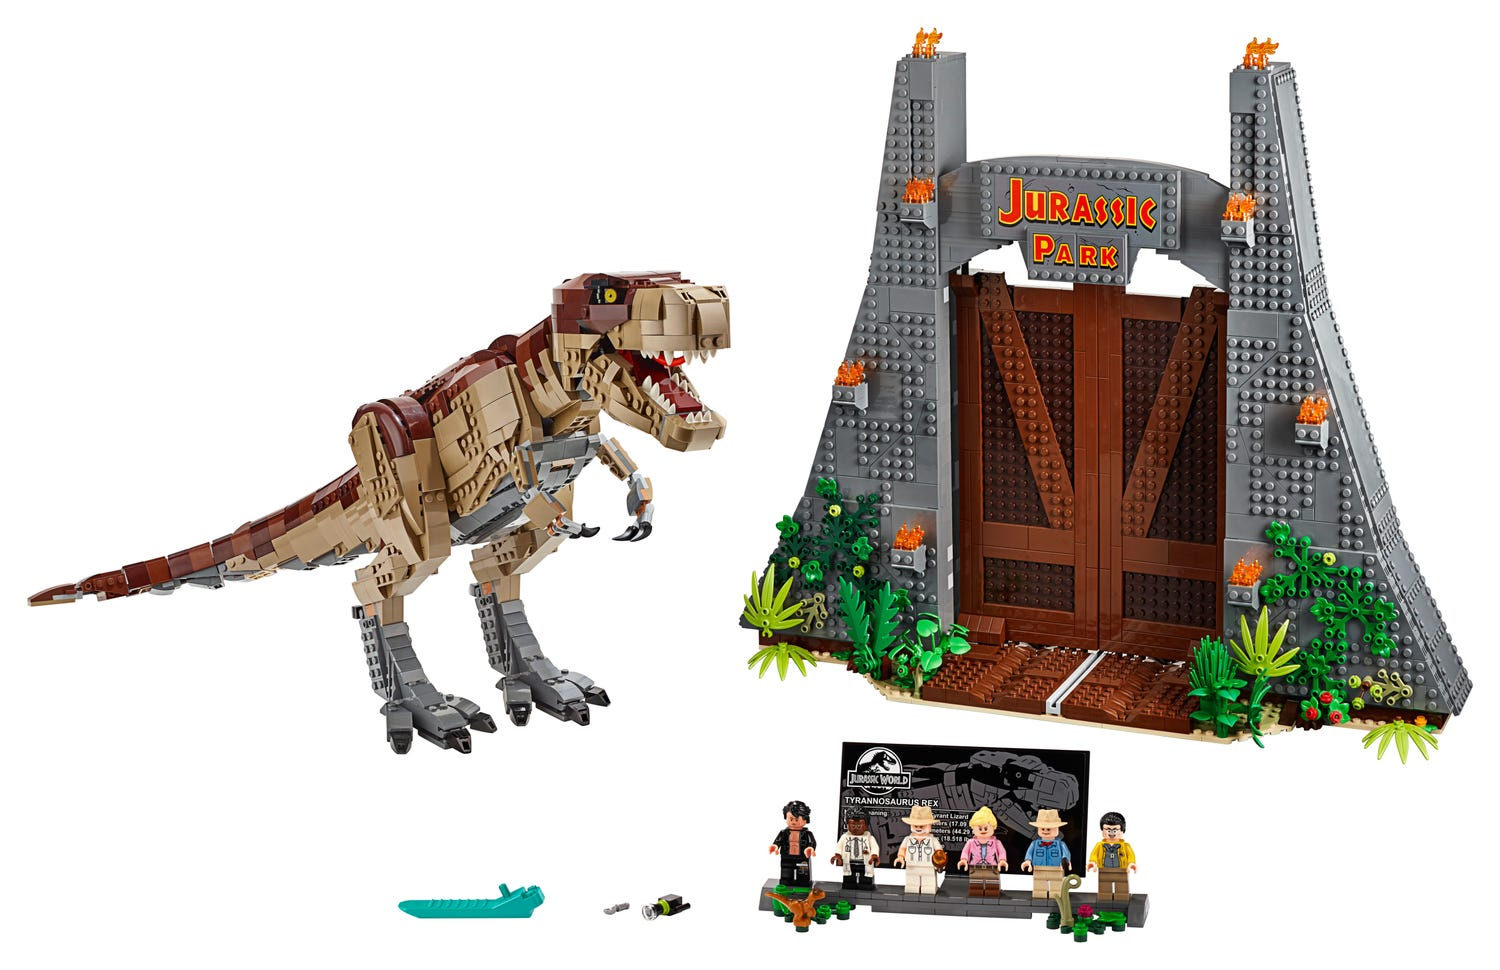 Biggest LEGO Jurassic Park so far set to retire later this year